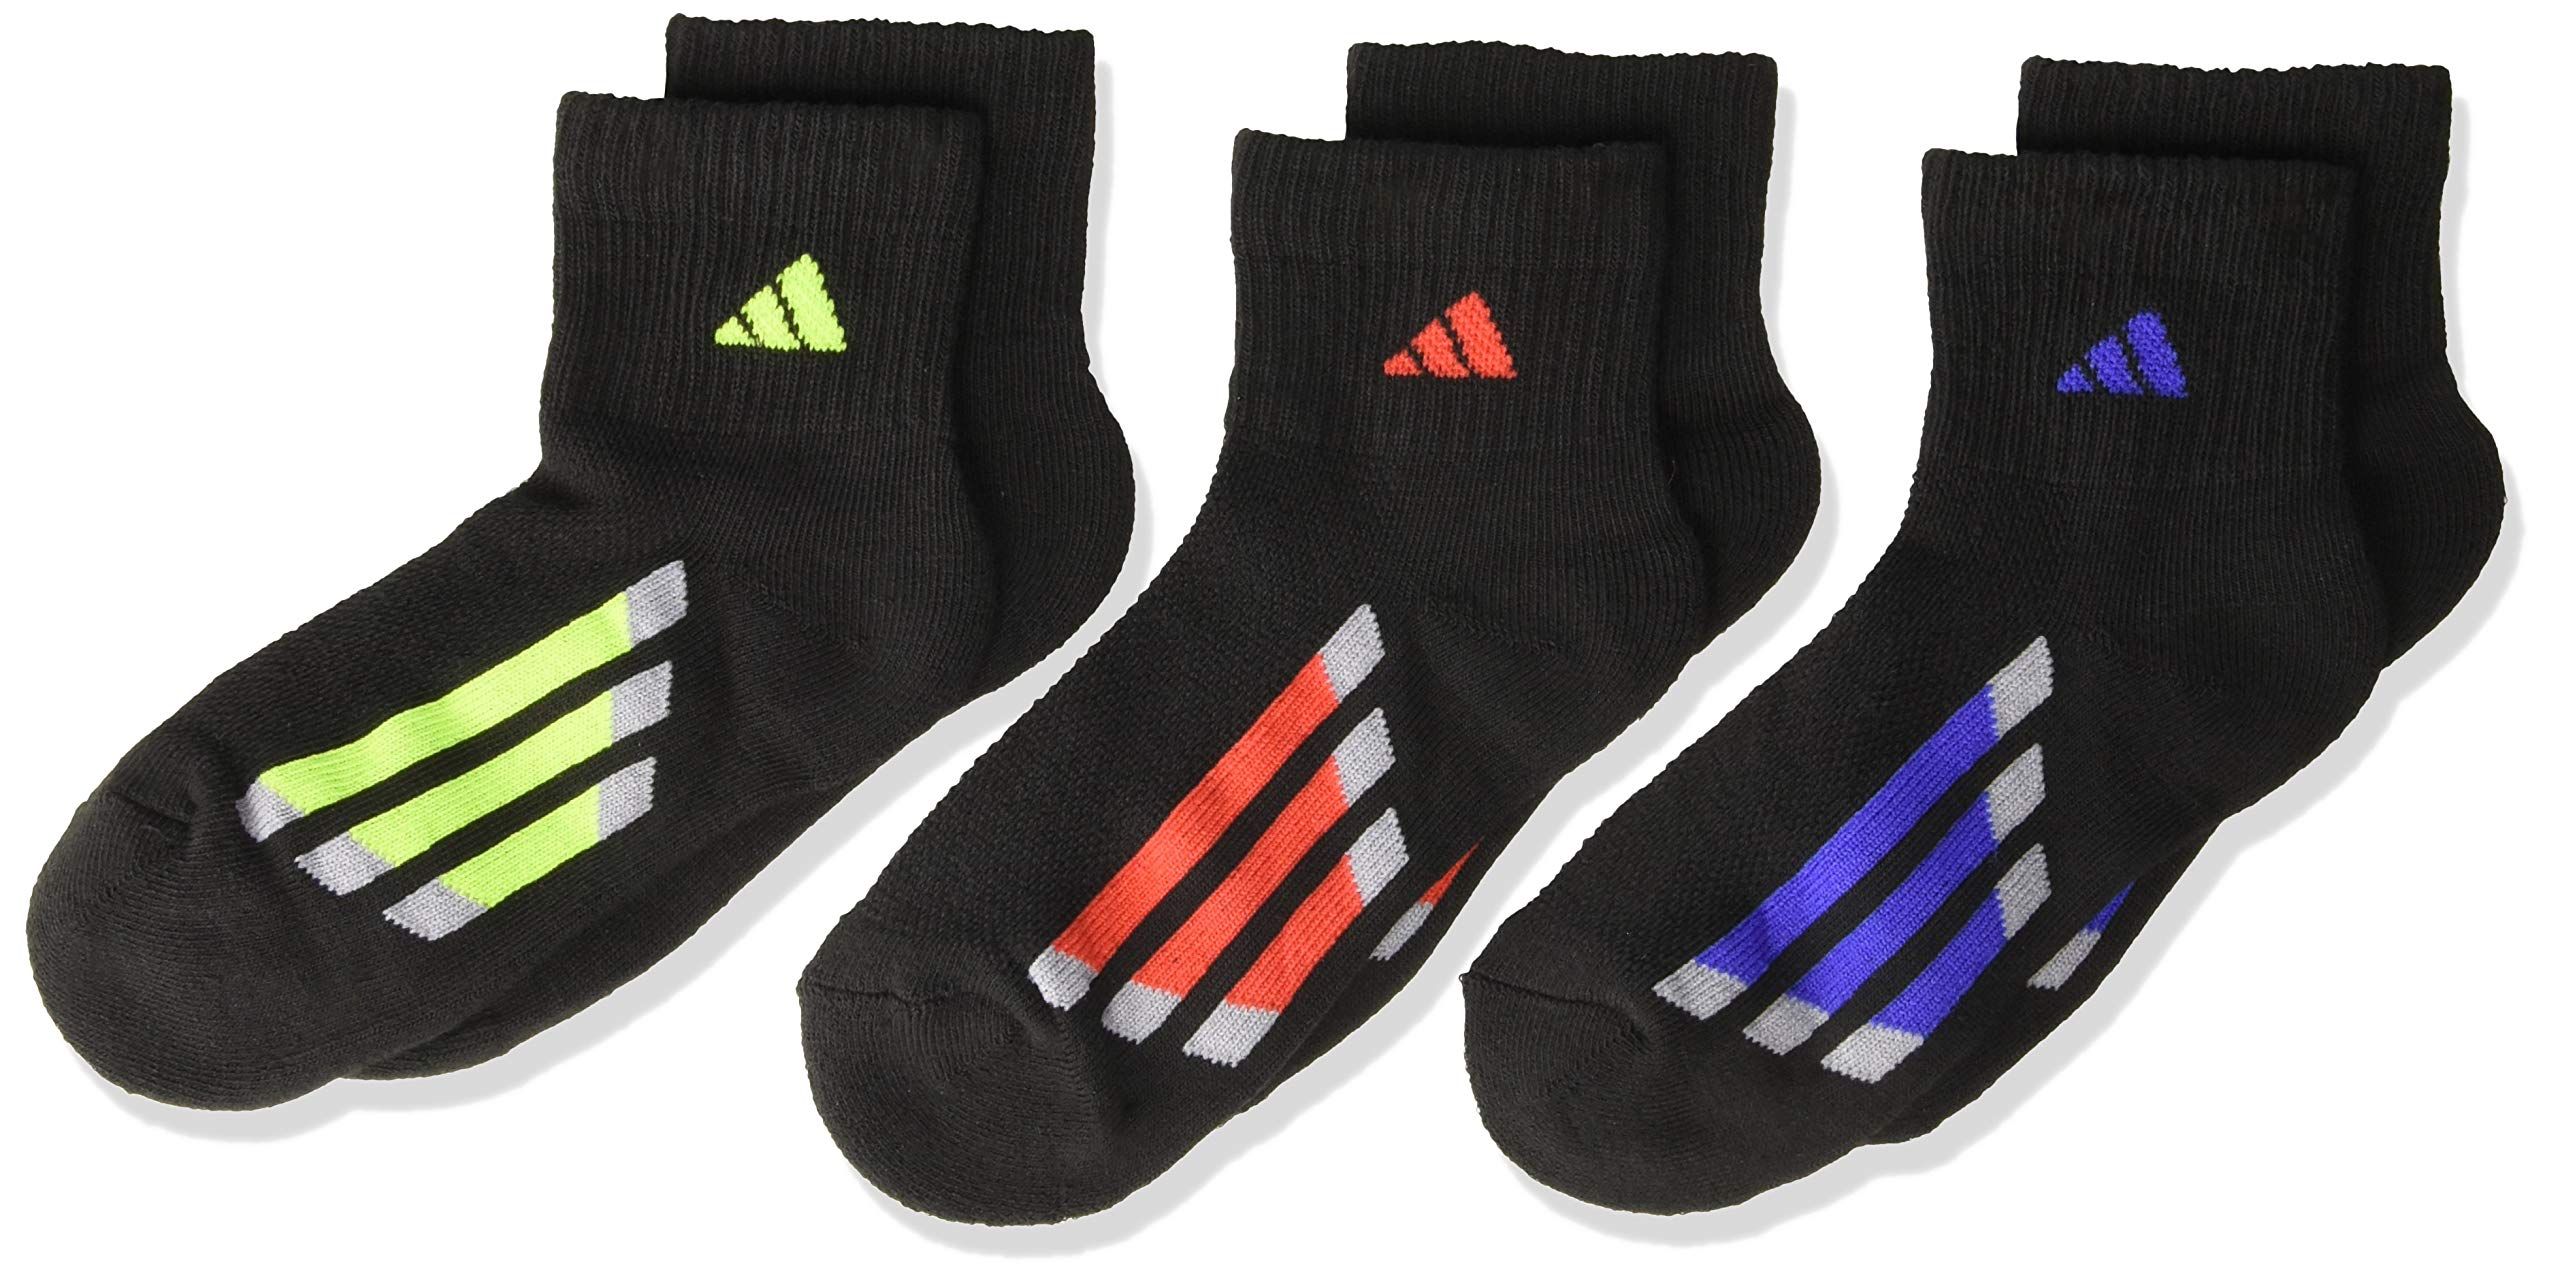 adidas Kids' - Boys/Girls Cushioned Quarter Socks (6-Pair), Black/Active Blue/Light Onix Black/Active Red, 3Y-9